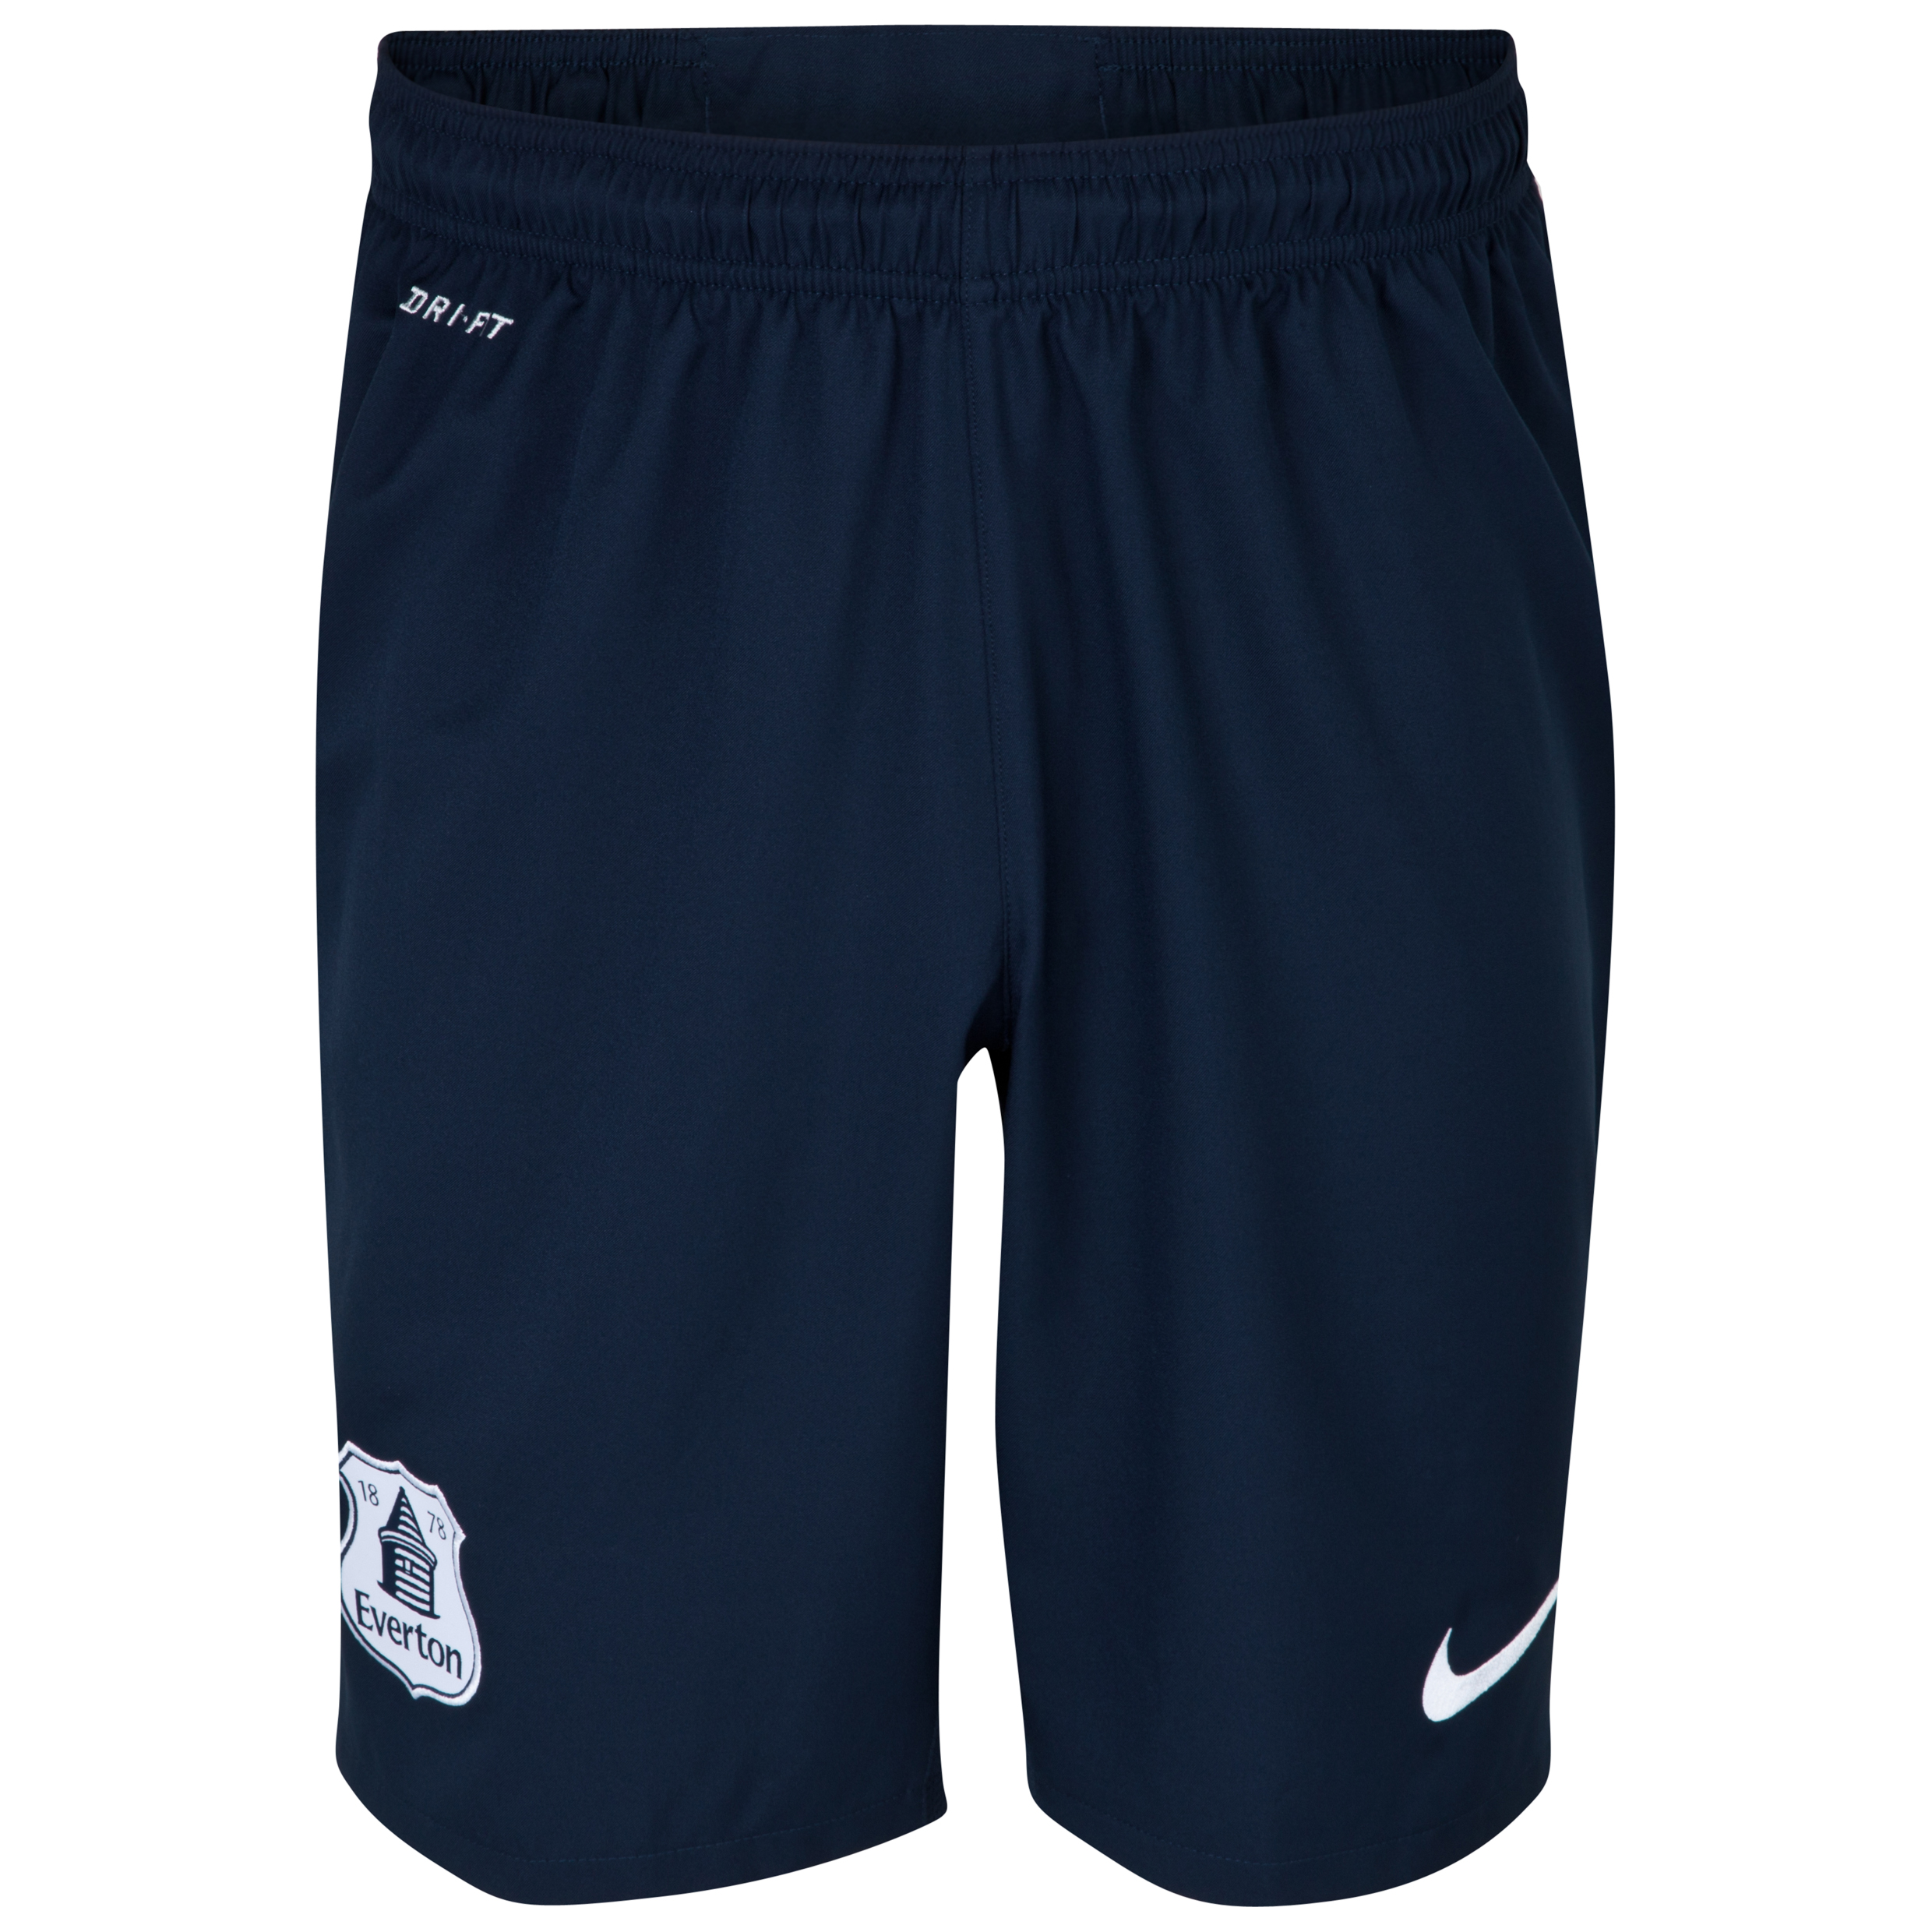 Everton 3rd Short 2013/14 - Junior Navy